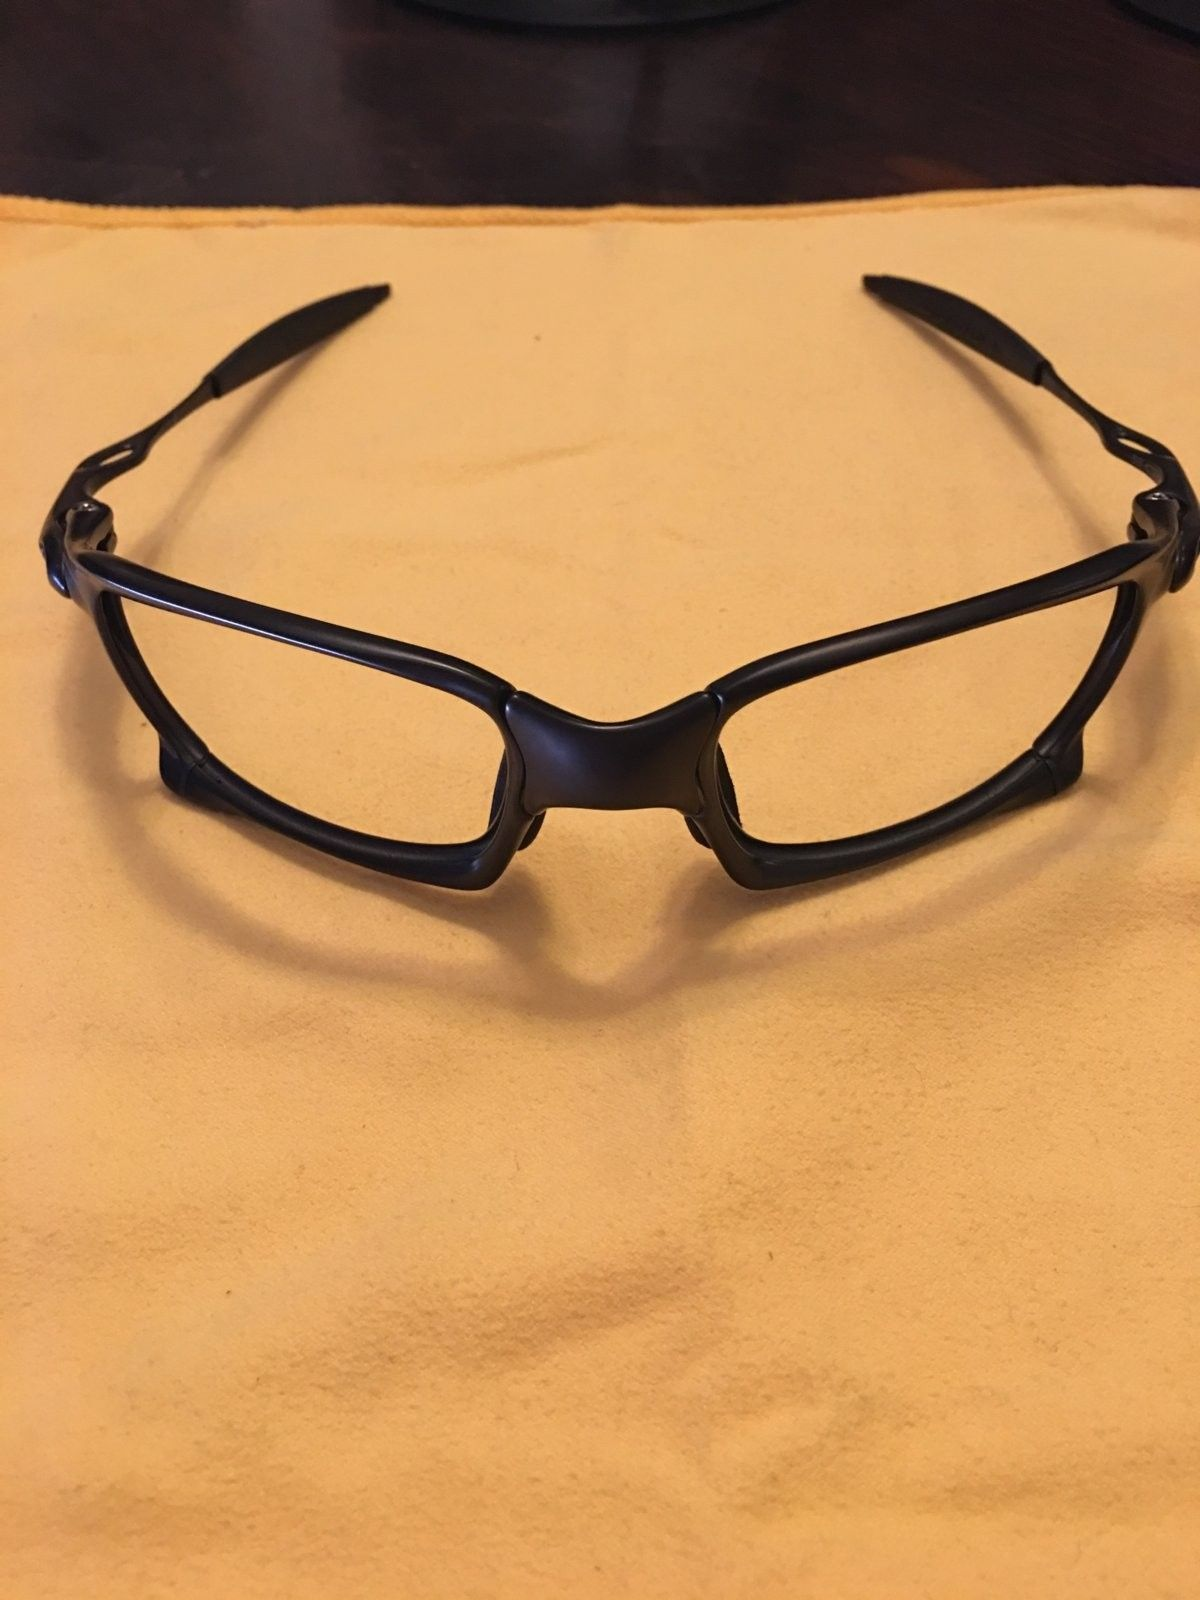 New unused XS Carbon -08 frame and microbag only. - image.jpeg